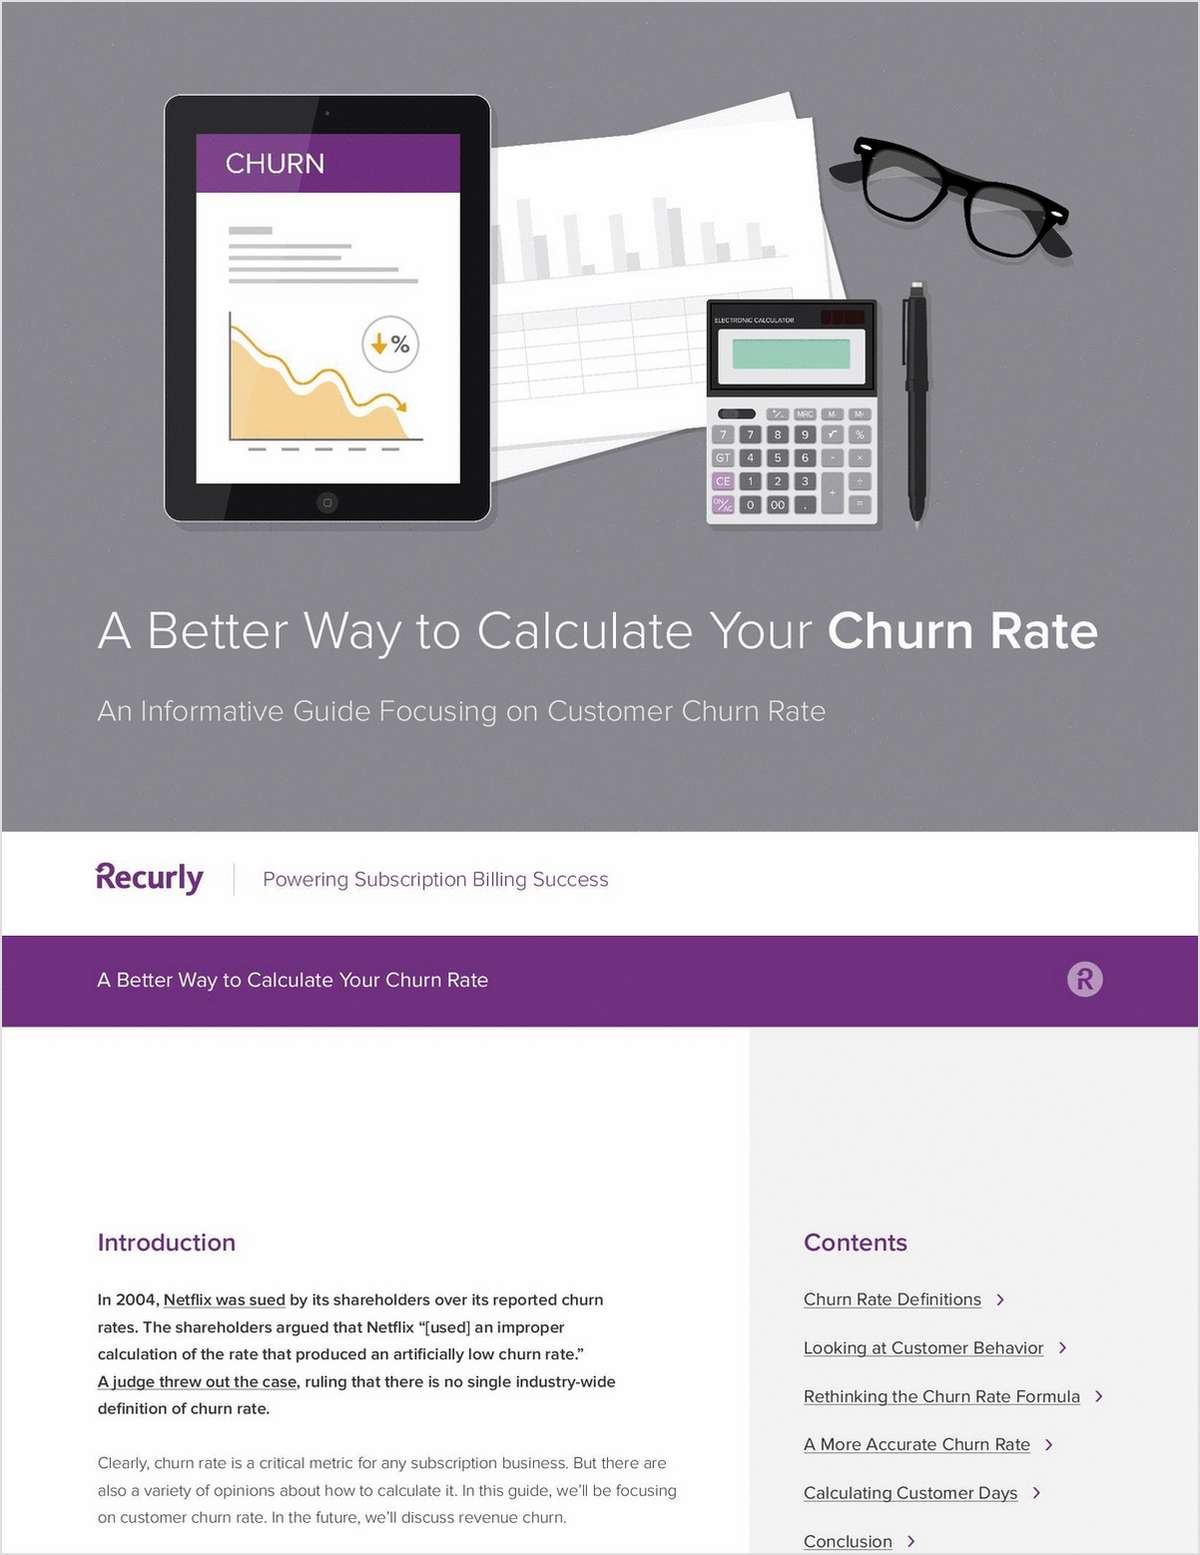 A Better Way to Calculate Your Churn Rate